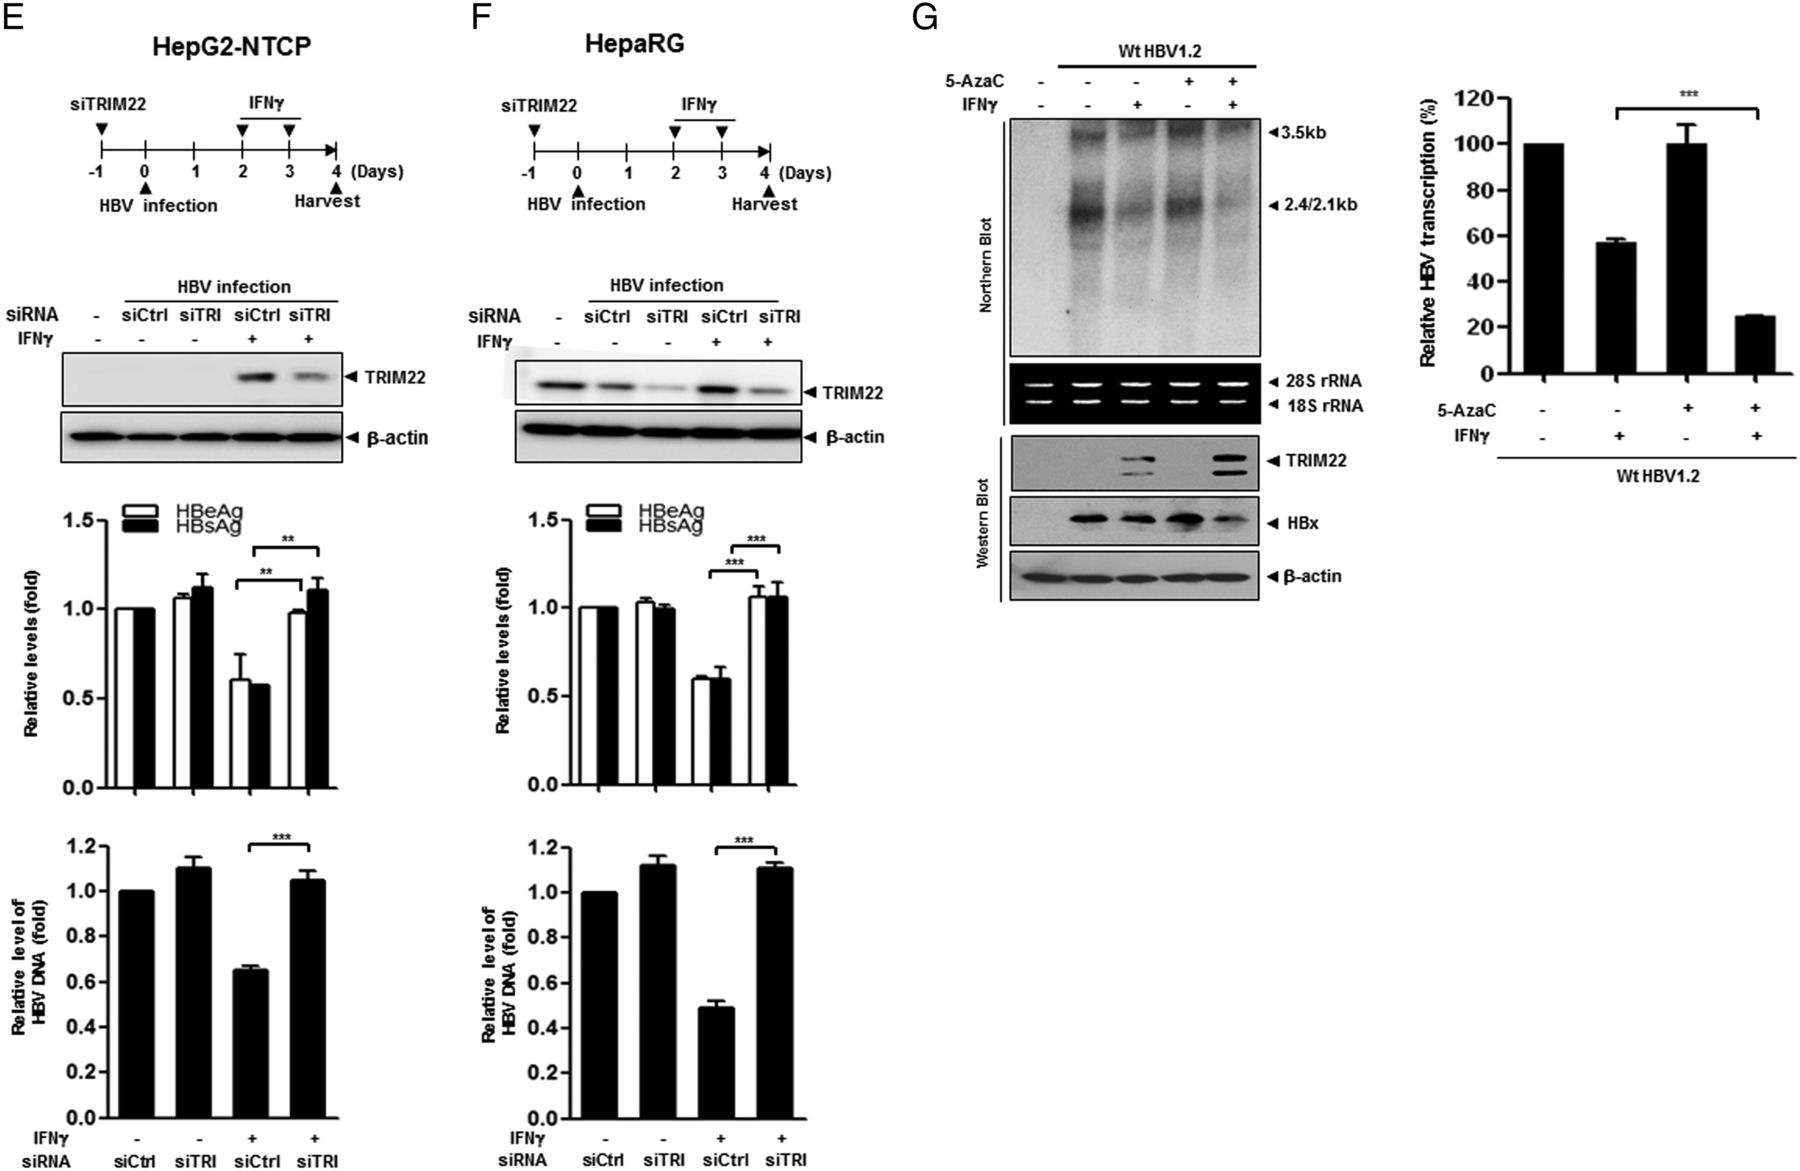 Suppression of interferon-mediated anti-HBV response by single CpG